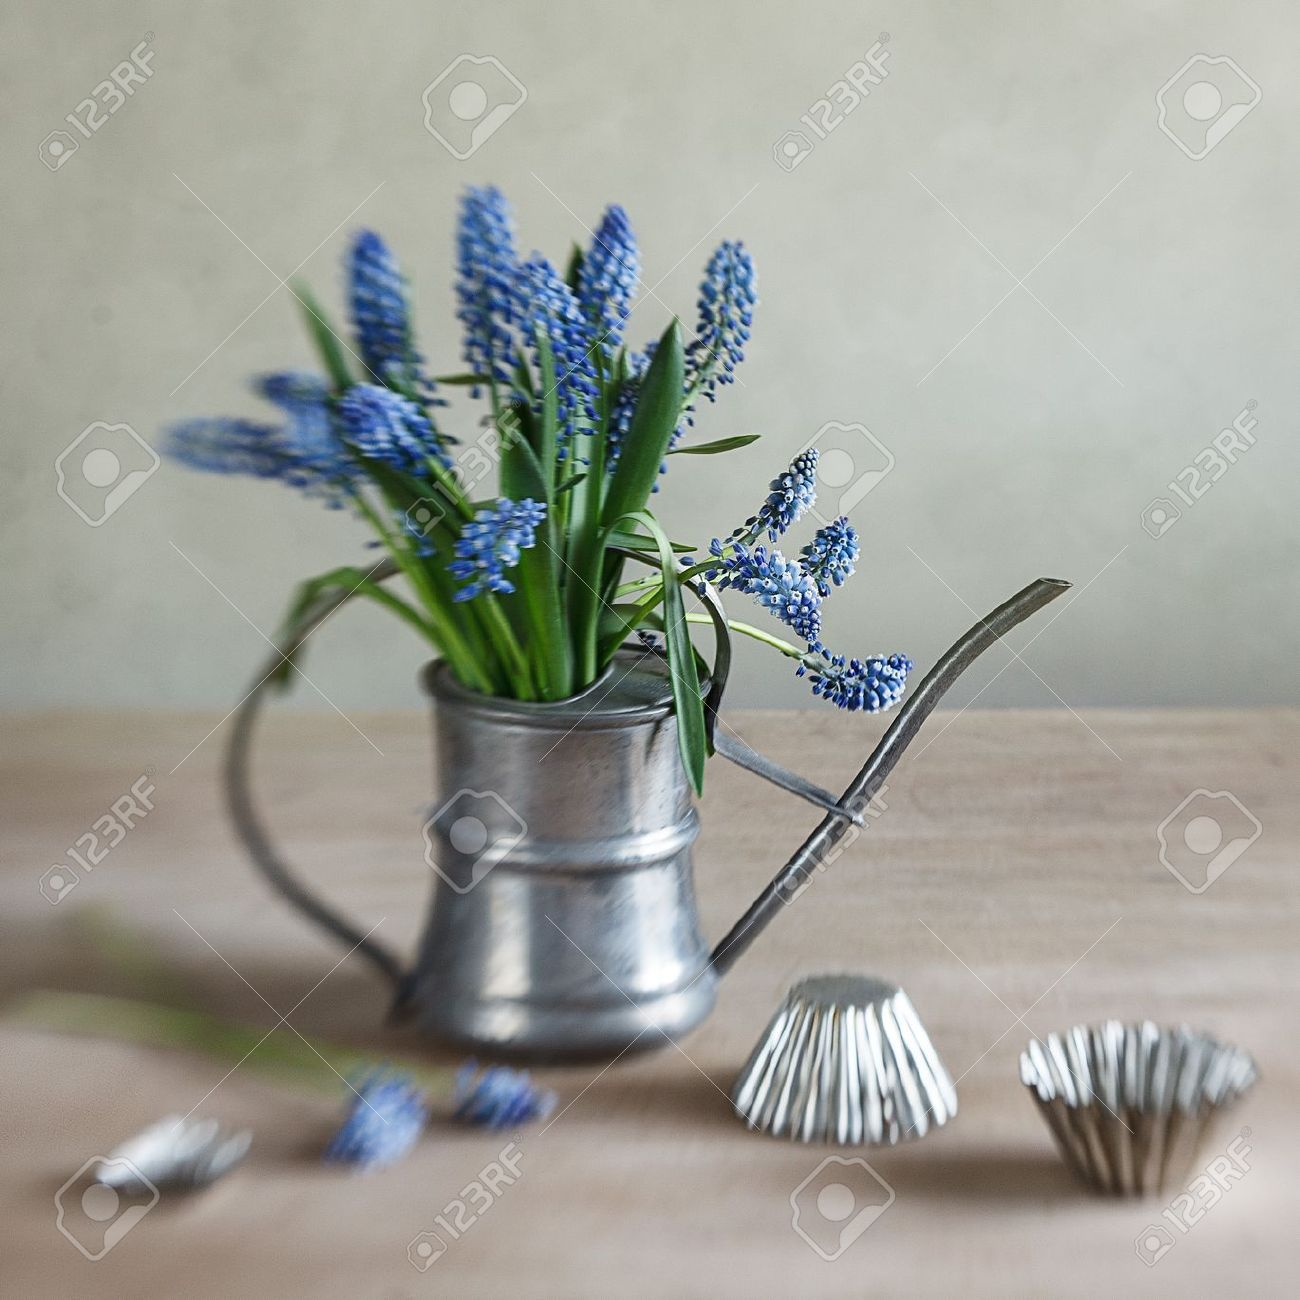 Still life with grape hyacinths arranged in an antique watering can with old moulds on a rustic wooden kitchen table Stock Photo - 13725167